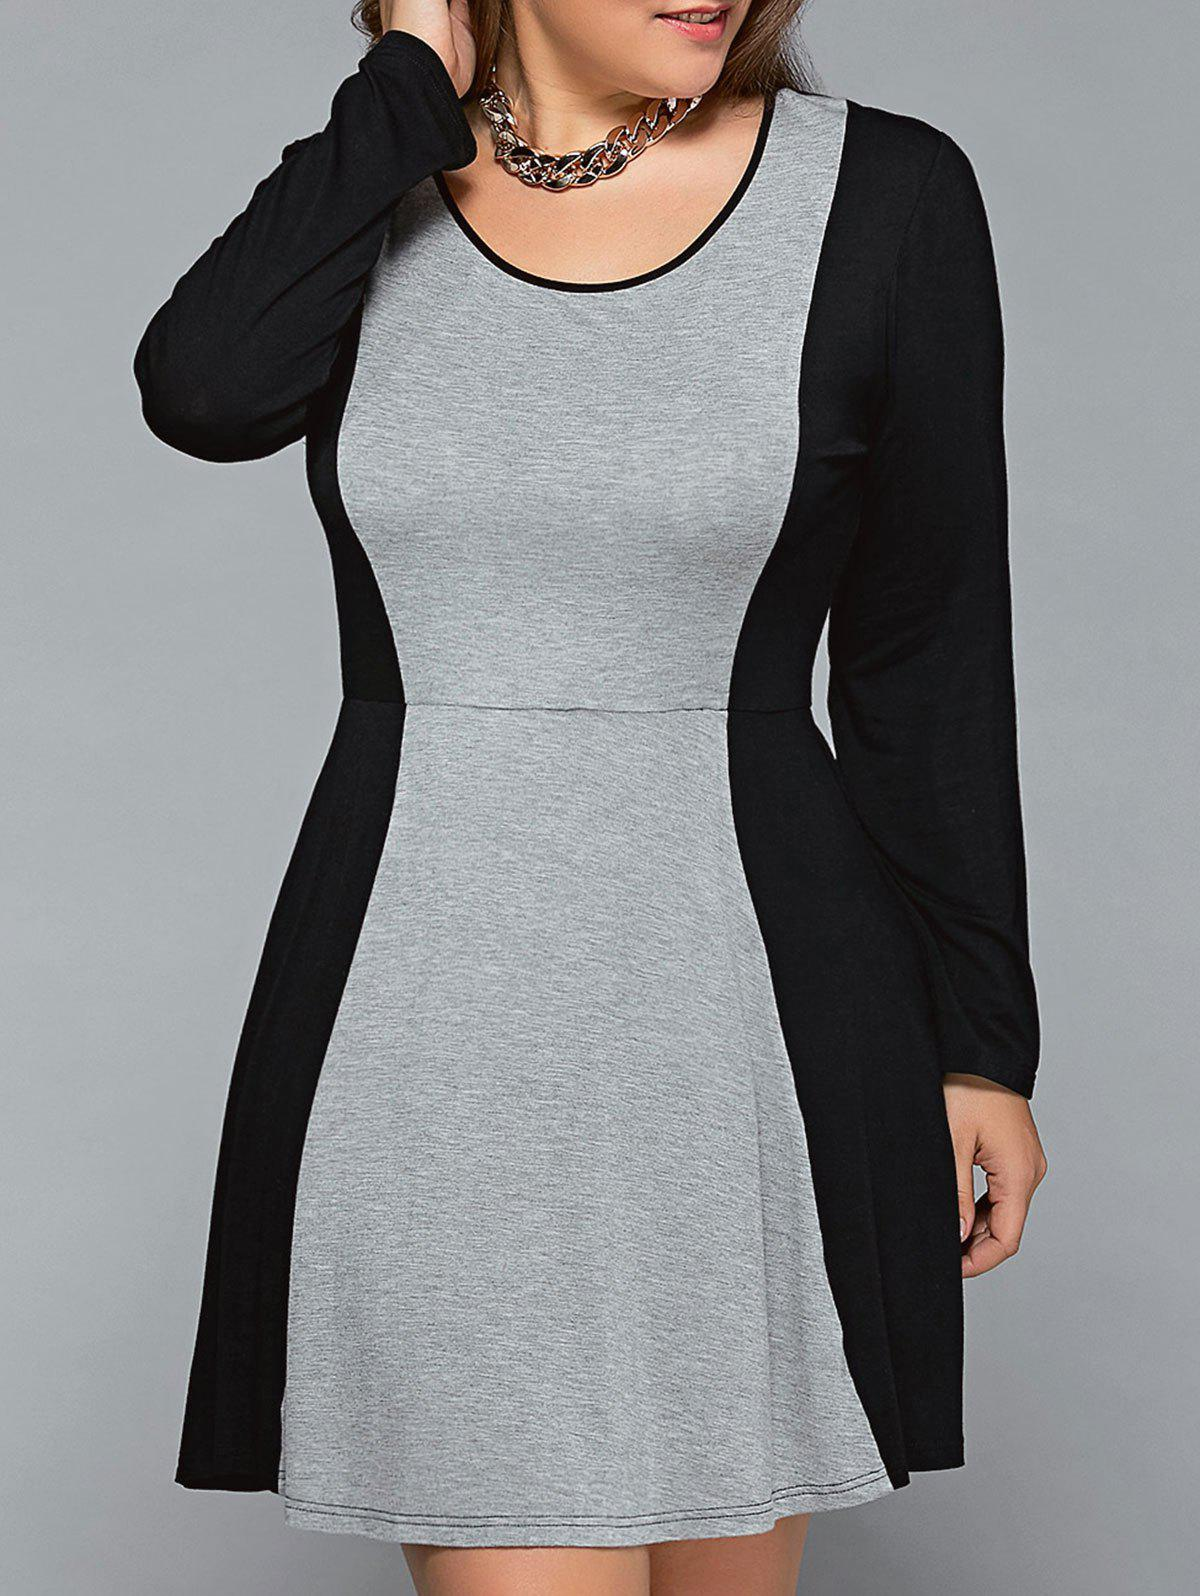 Plus Size Long Sleeve Flare DressWOMEN<br><br>Size: 4XL; Color: BLACK AND GREY; Style: Brief; Material: Cotton Blend,Spandex; Silhouette: A-Line; Dresses Length: Mini; Neckline: Scoop Neck; Sleeve Length: Long Sleeves; Pattern Type: Patchwork; With Belt: No; Season: Fall,Spring,Summer; Weight: 0.370kg; Package Contents: 1 x Dress;